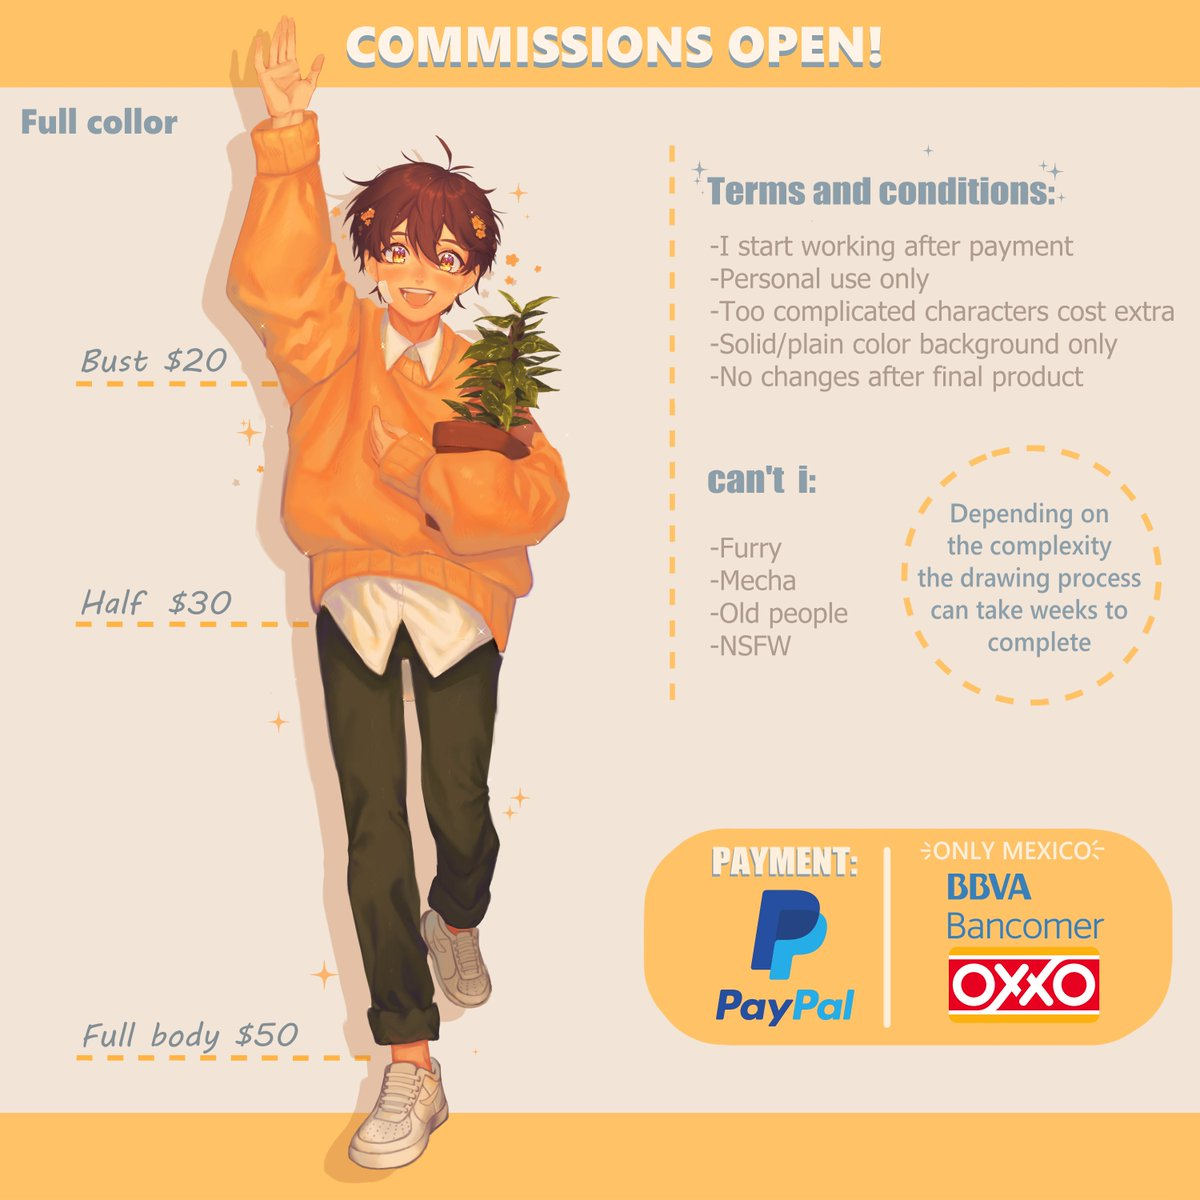 🌿✨COMMISSIONS OPEN✨🌿  🔸Order form:  -commission type -character reference -expression and pose -paypal adress (si eres de México, poner la forma de pago que desees)  If you are interested, send me a DM with the order form information.  RT's appreciated 💛 Thank you